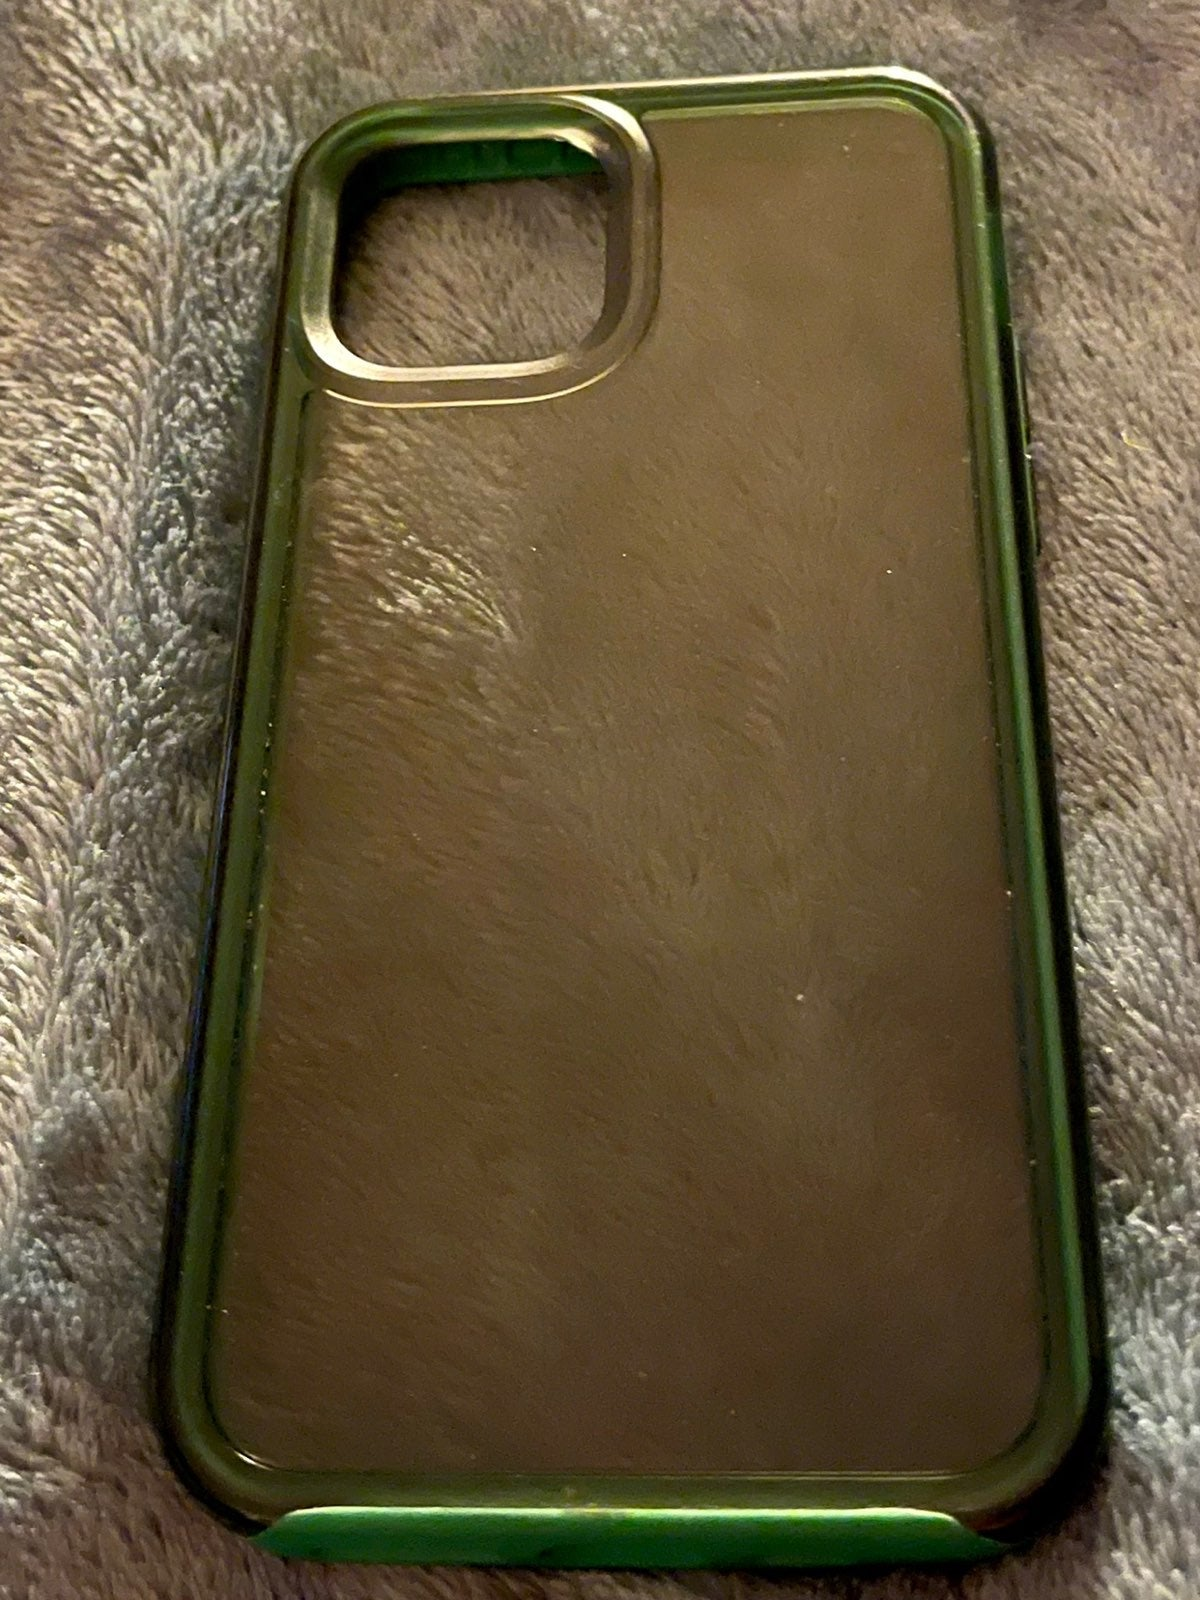 iPhone 11 Pro green life proof case